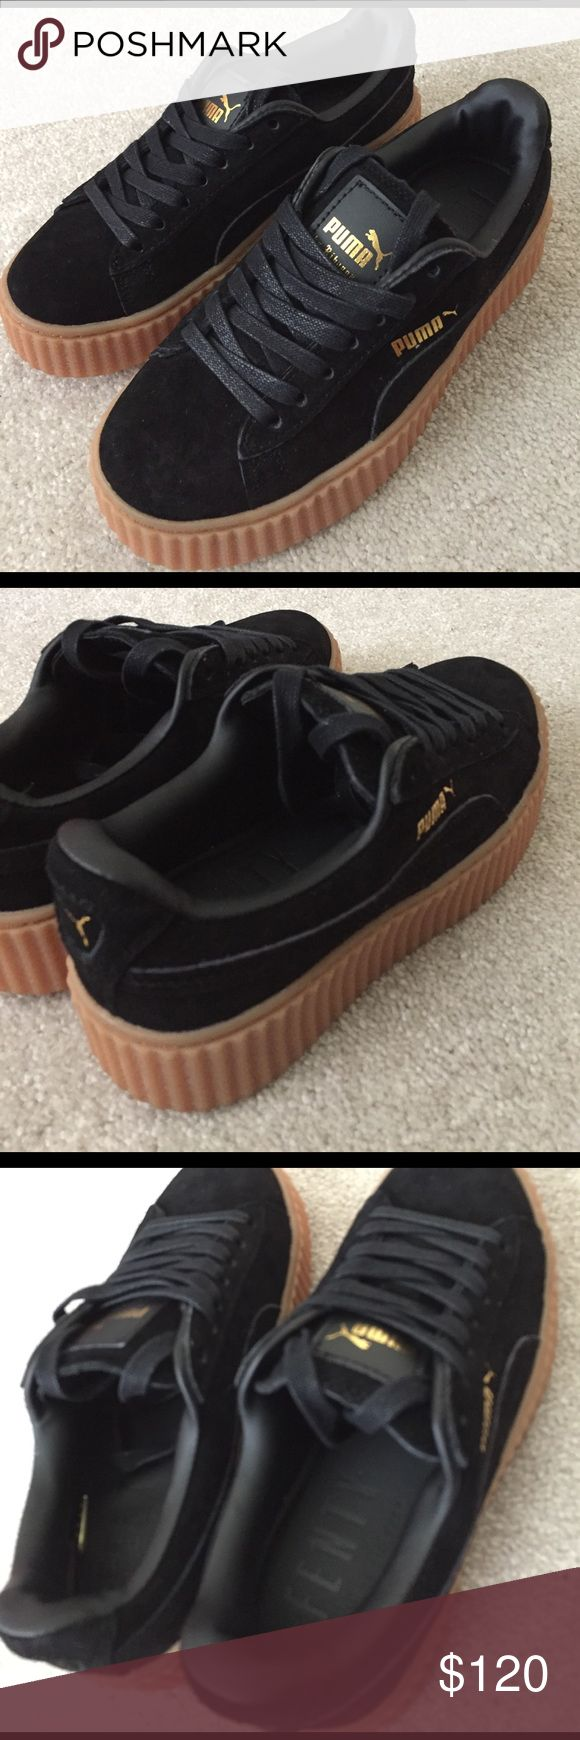 78 best ideas about creepers on